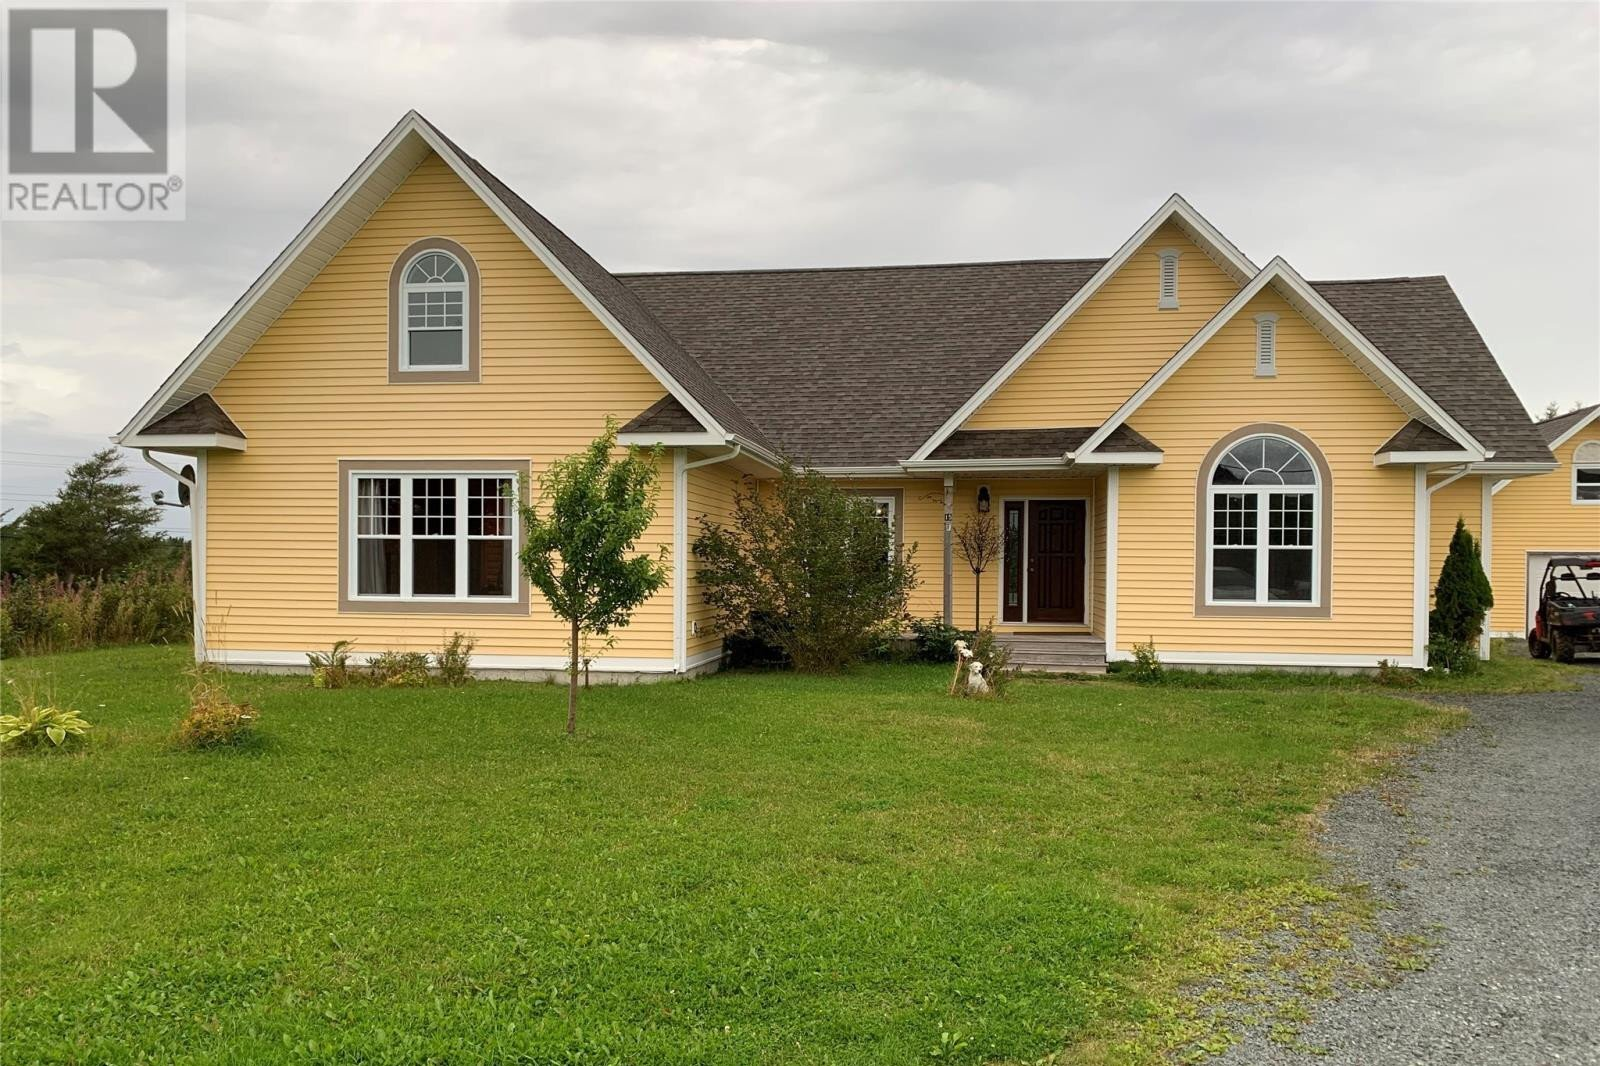 House for sale at 15 Youth Valley Rd Hearts Delight Newfoundland - MLS: 1218967